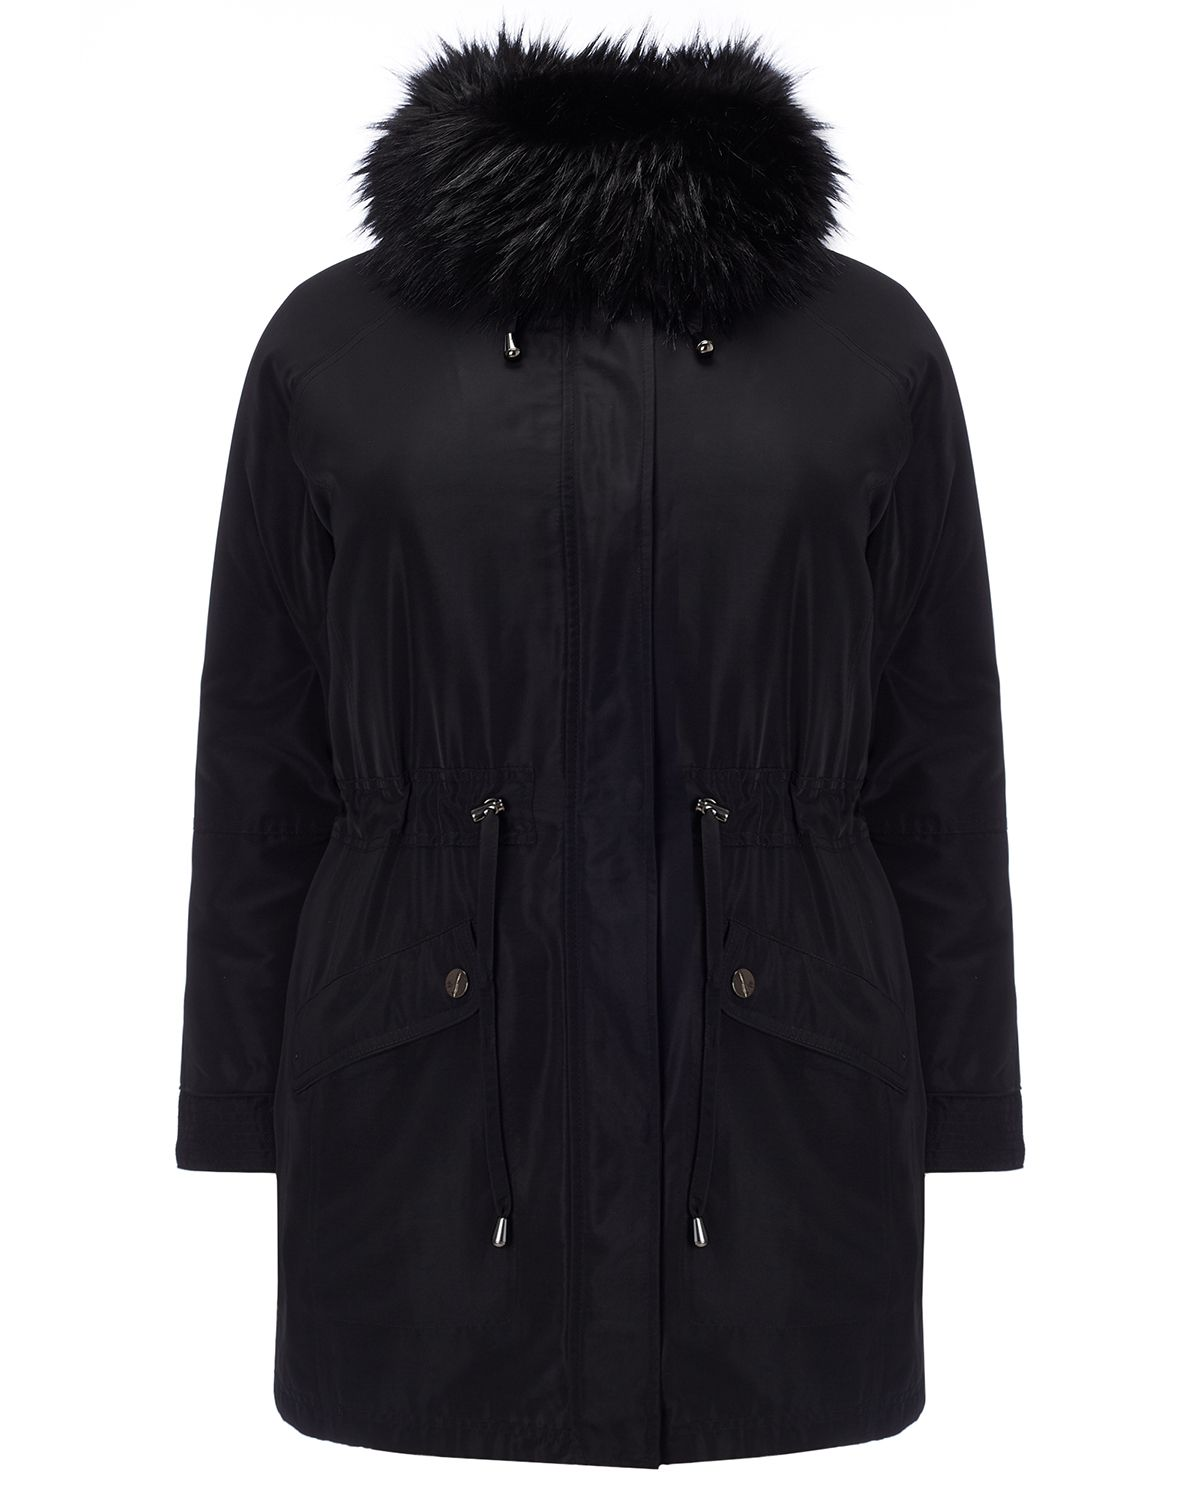 Studio 8 Plus Size Faith parka coat, Black